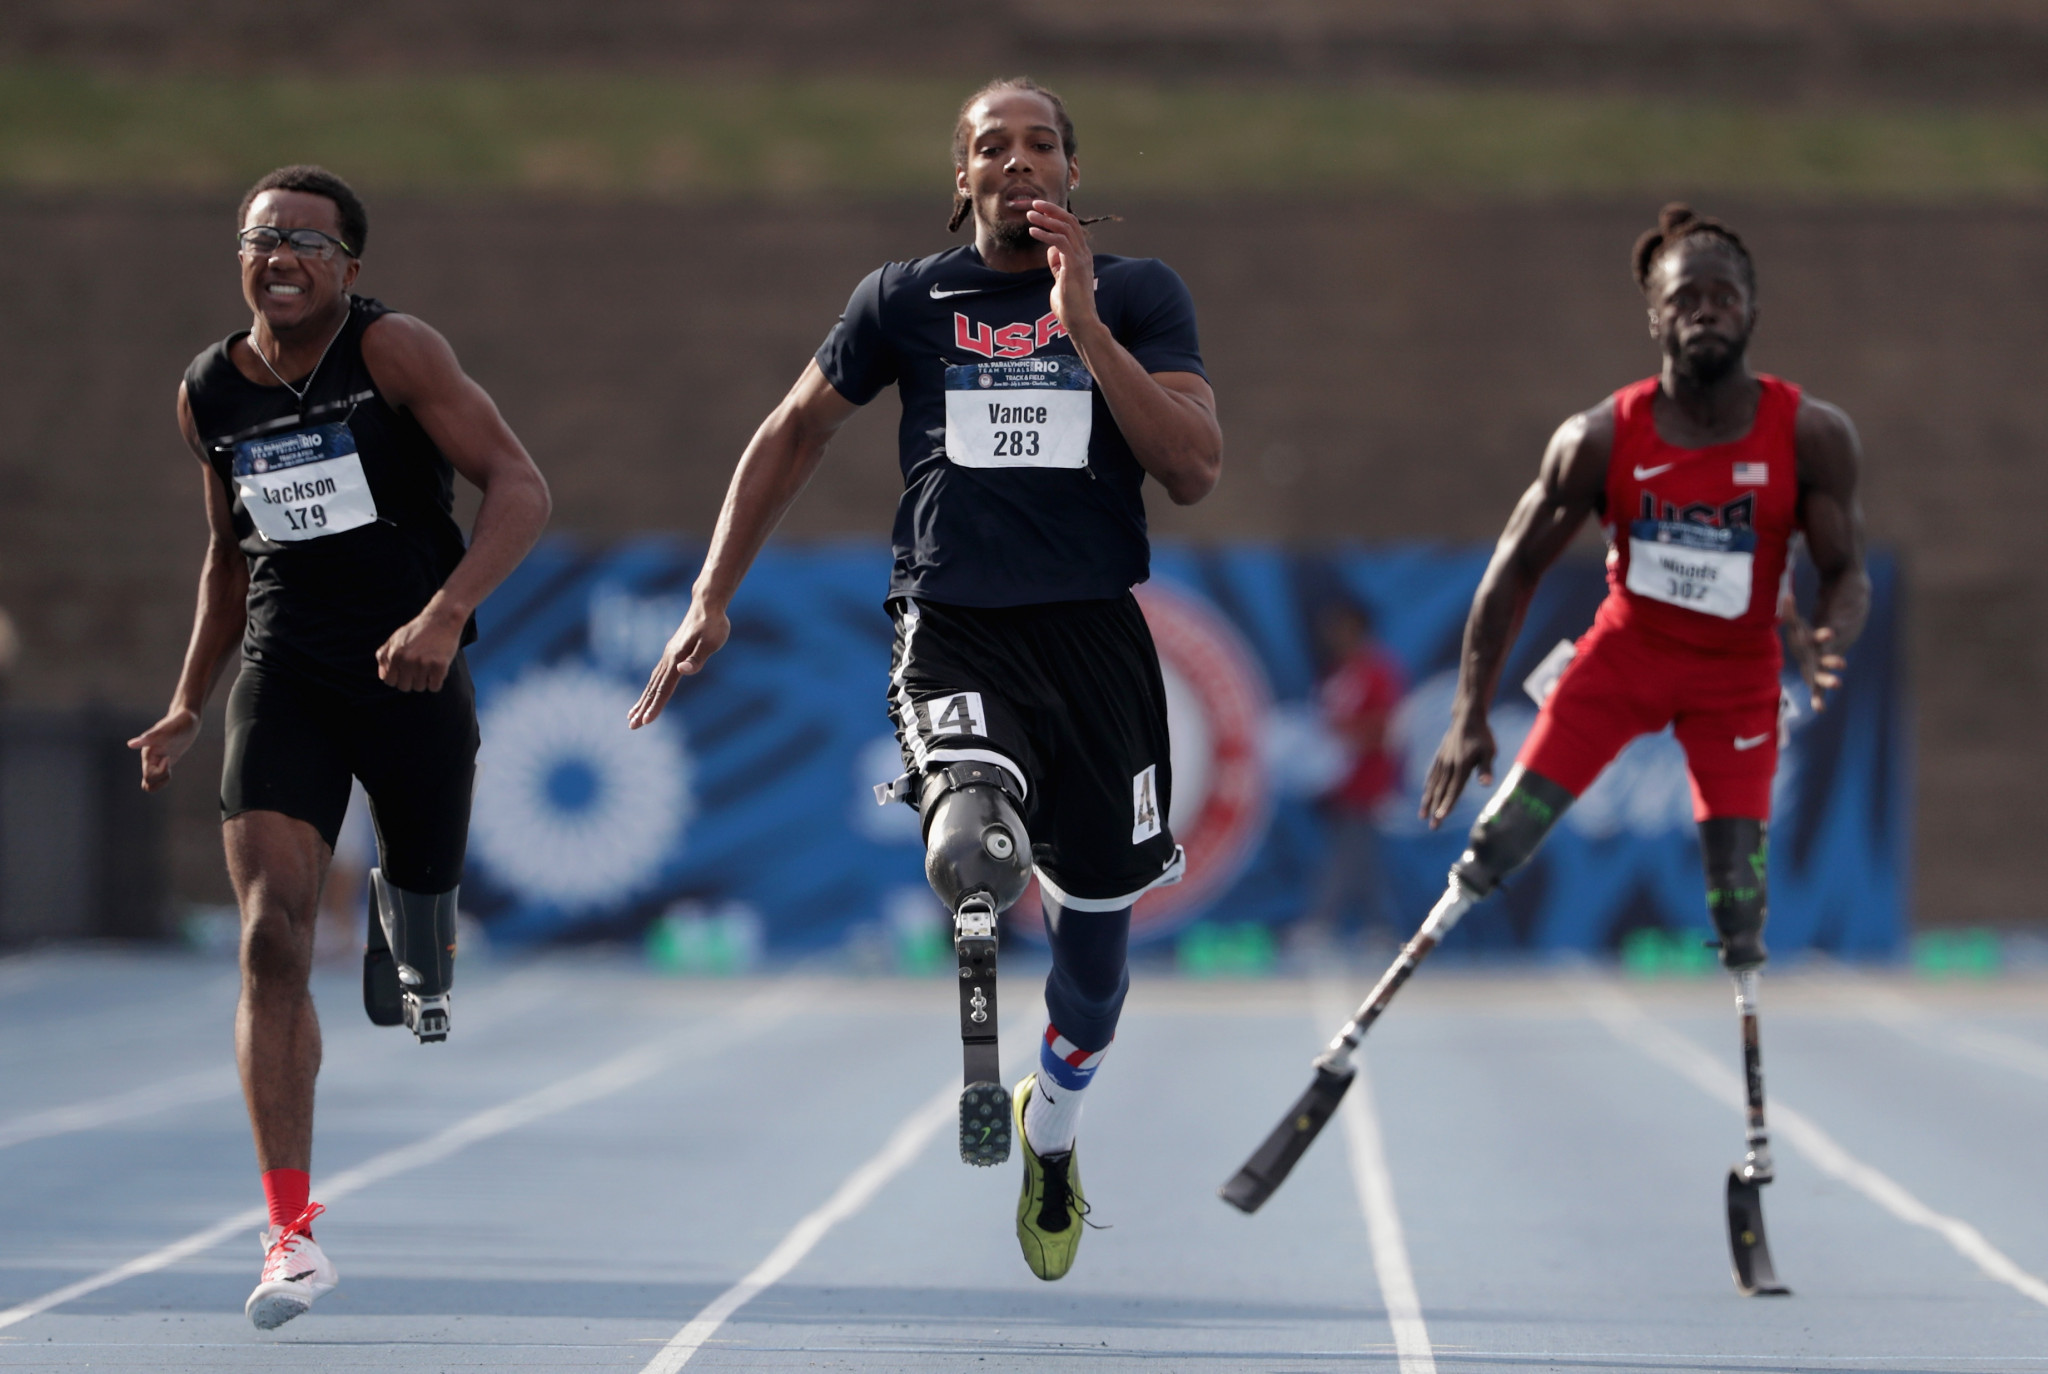 Paralympic silver medallist Vance handed three-year ban for evading drug test